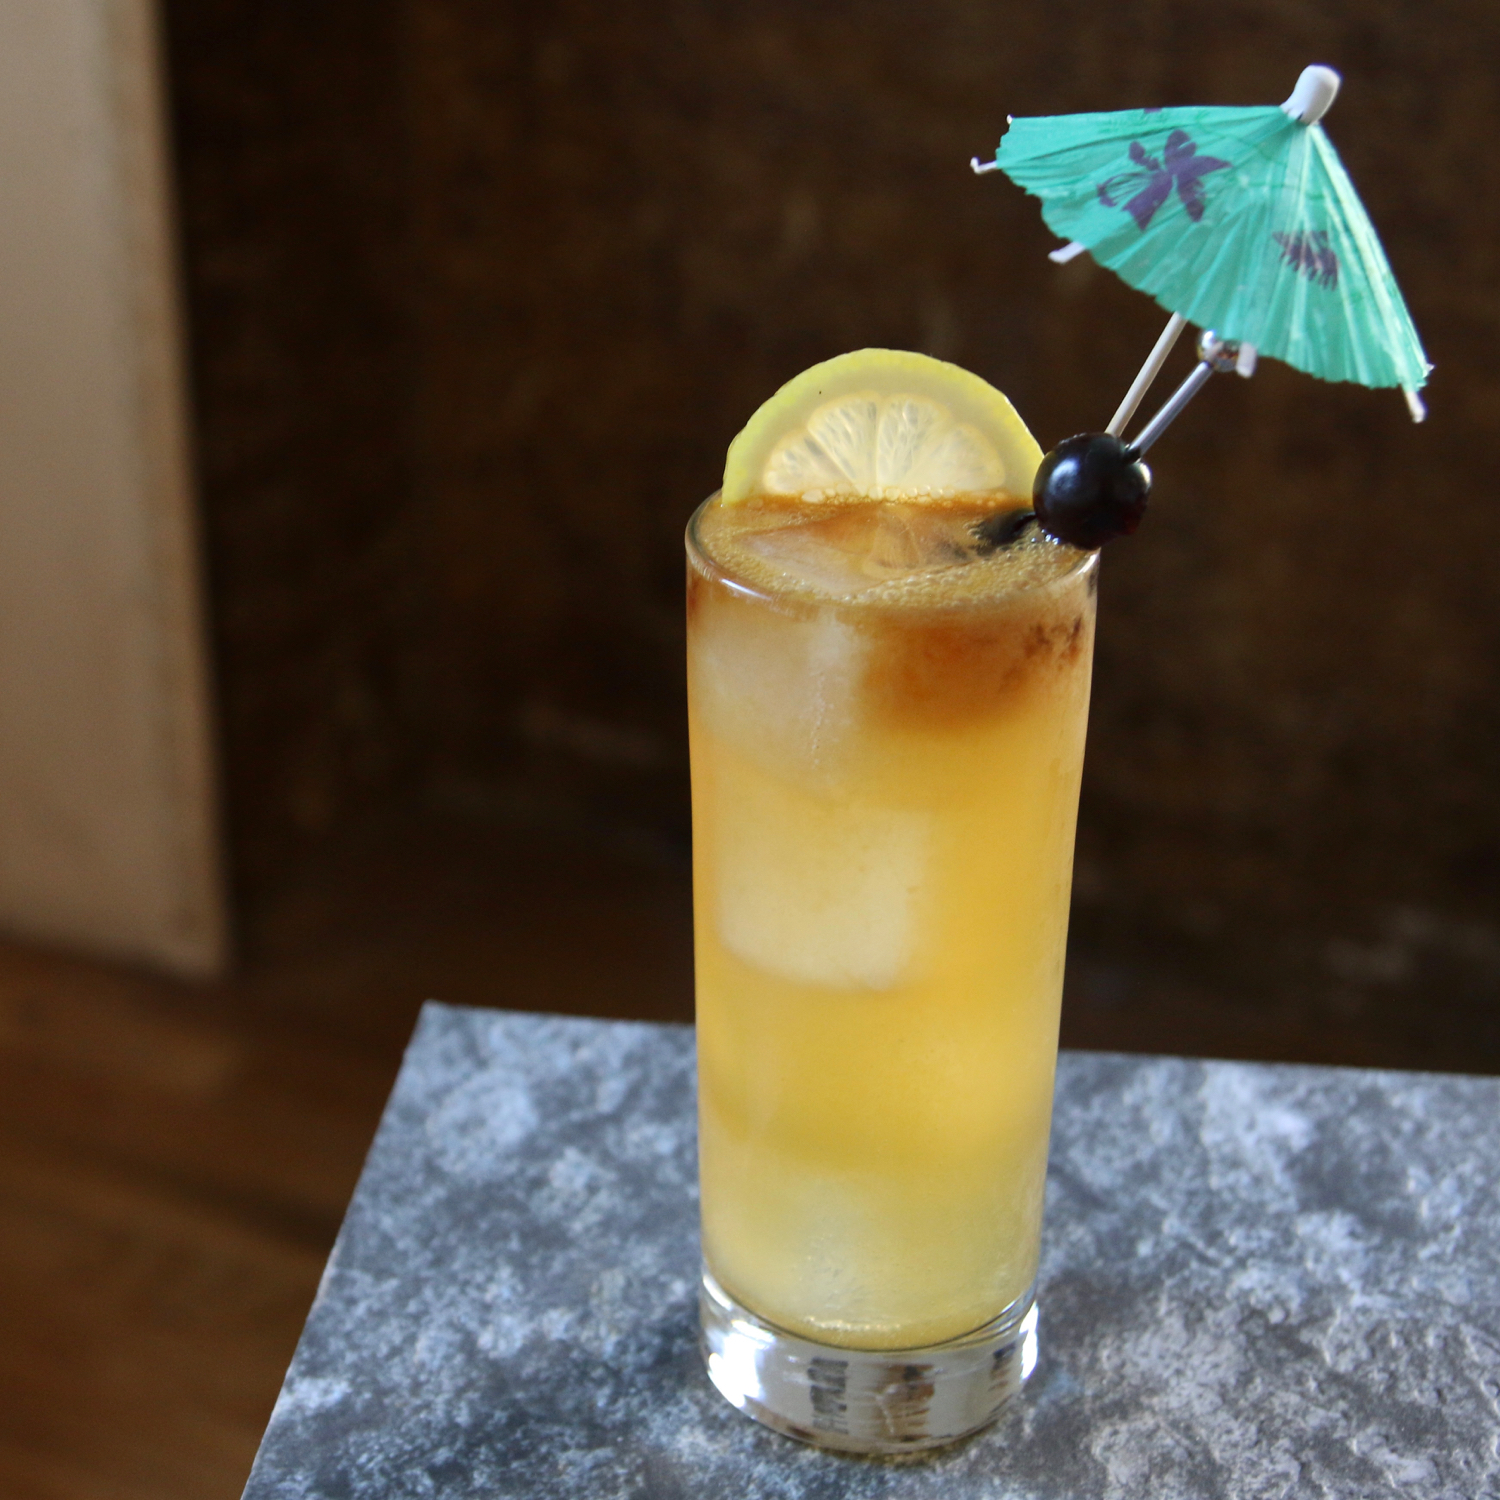 3 Classic New Orleans Cocktails For Your Mardi Gras Enjoyment